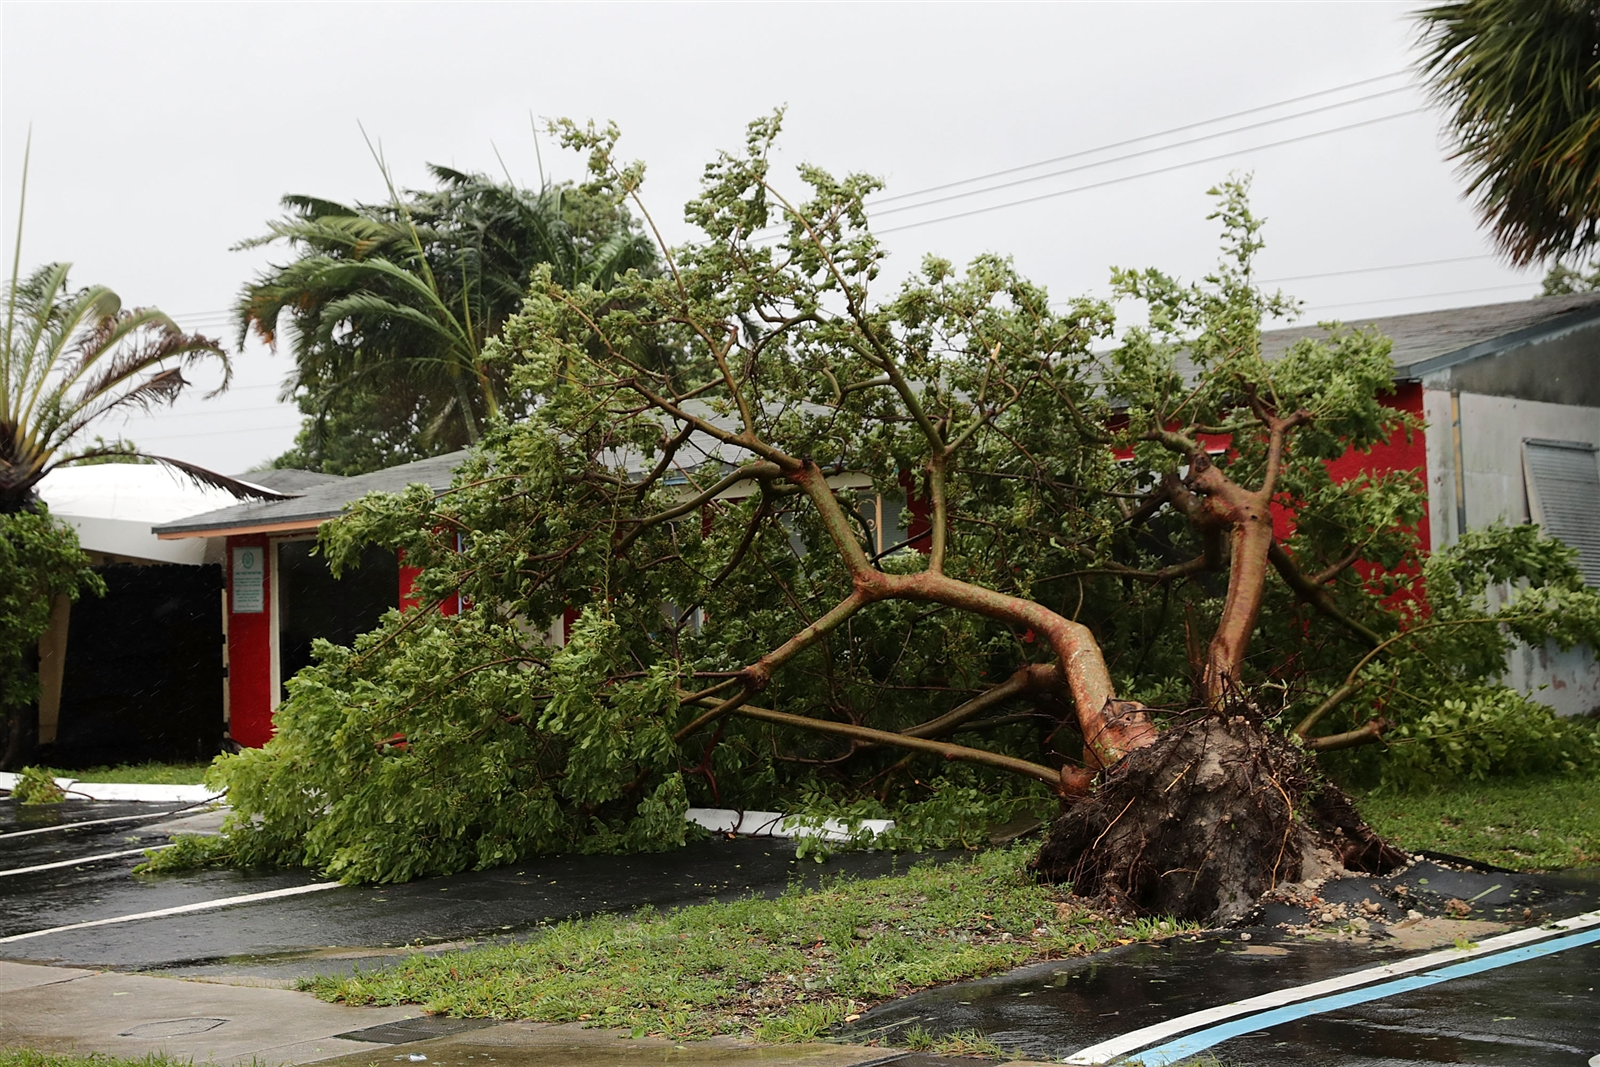 A tree is knocked down by winds produced by Hurricane Irma Sept. 10, 2017, in Fort Lauderdale, Fla. The category 4 hurricane made landfall in the United States in the Florida Keys at 9:10 a.m. after raking across the north coast of Cuba.